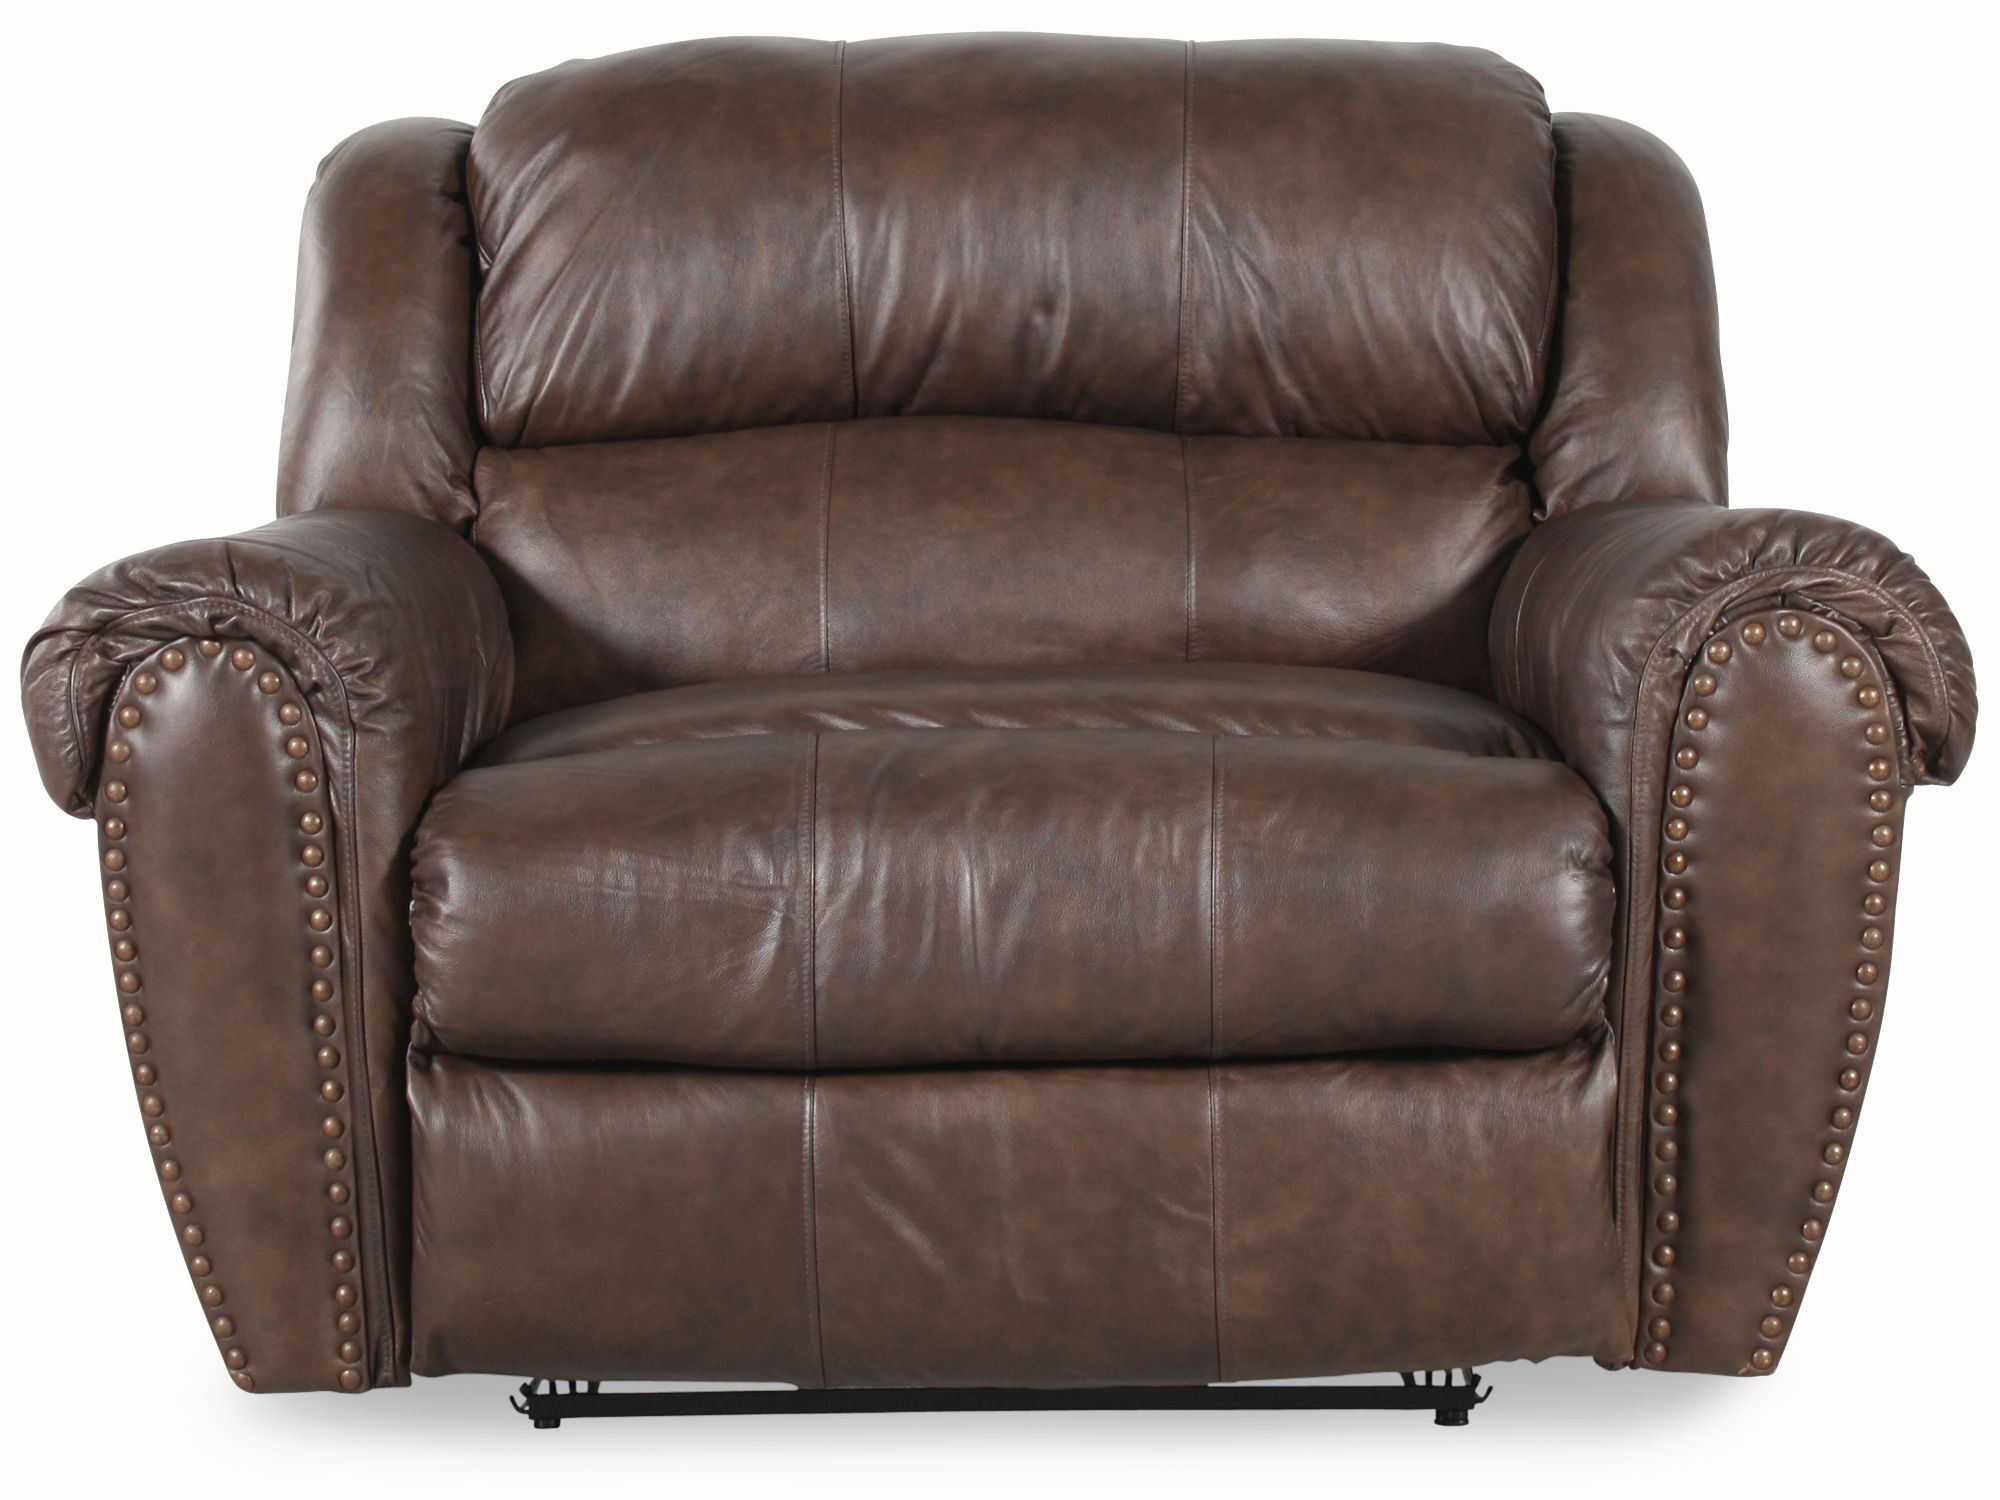 lane leather office chair brown sunbrella patio cushions canada nailhead accented snuggler recliner in